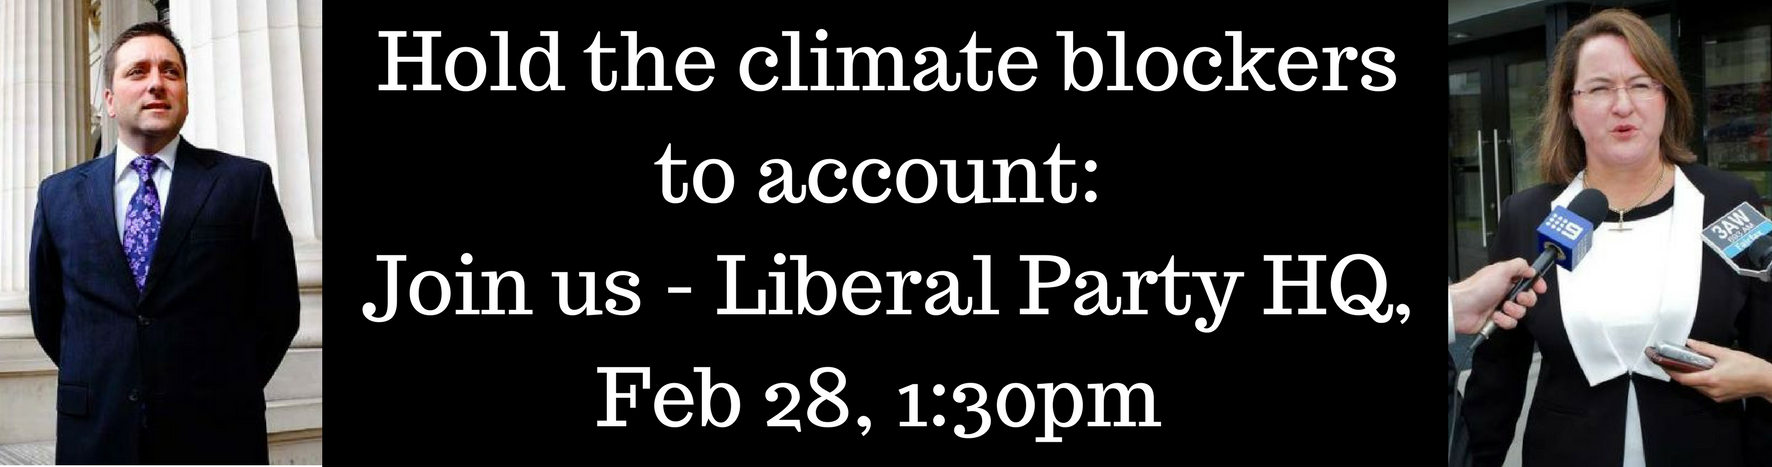 Hold_the_climate_blockers_to_account__Rally__Liberal_Party_HQ__Feb_28_(1_30pm)-3.png